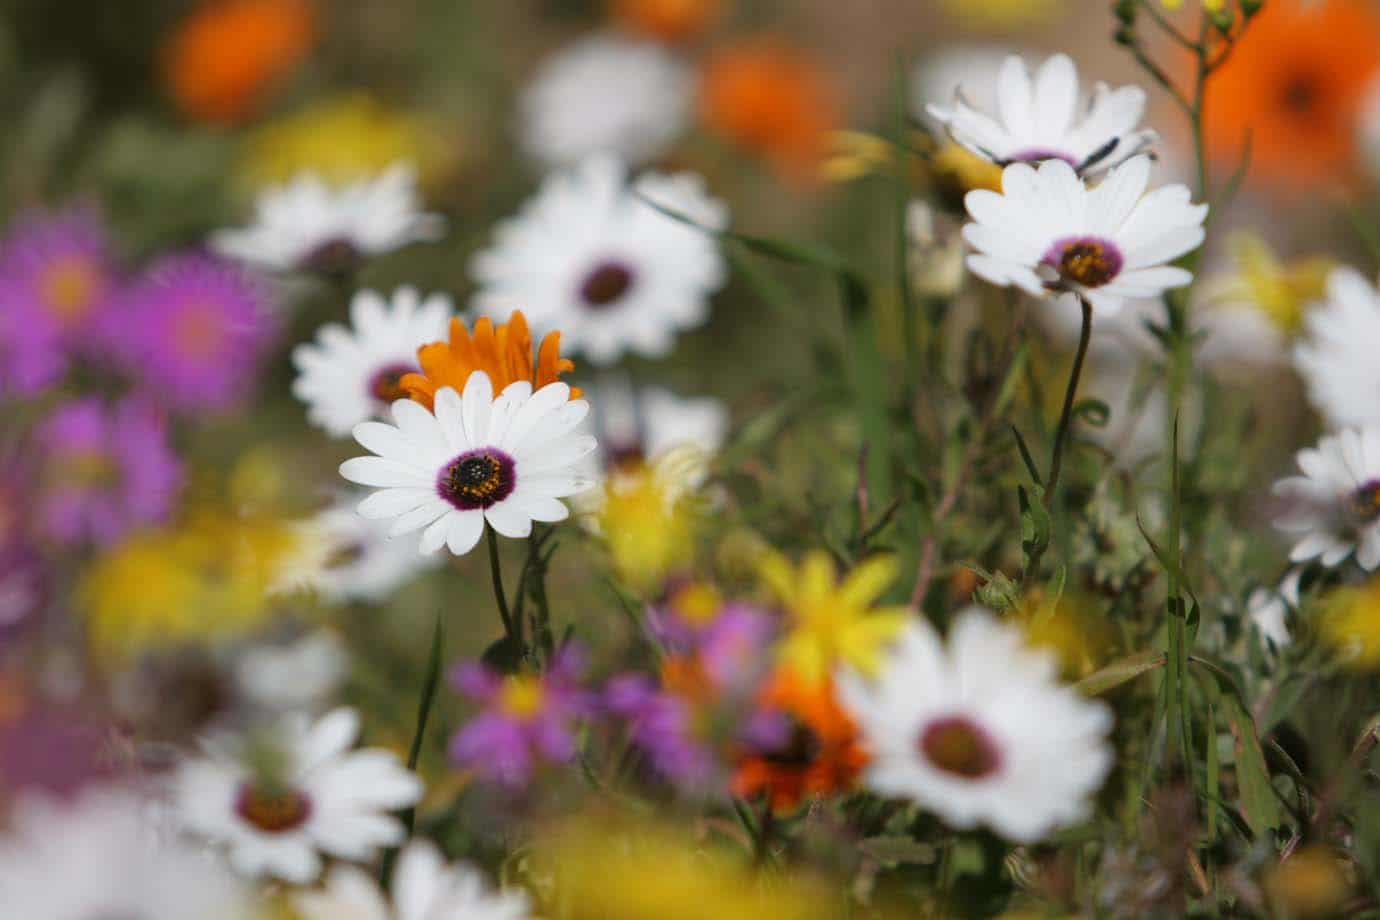 Flower power a guide to fynbos flowers the fynbos guy brightly coloured to us but just bright to insects these daisies are classic insect pollinated flowers izmirmasajfo